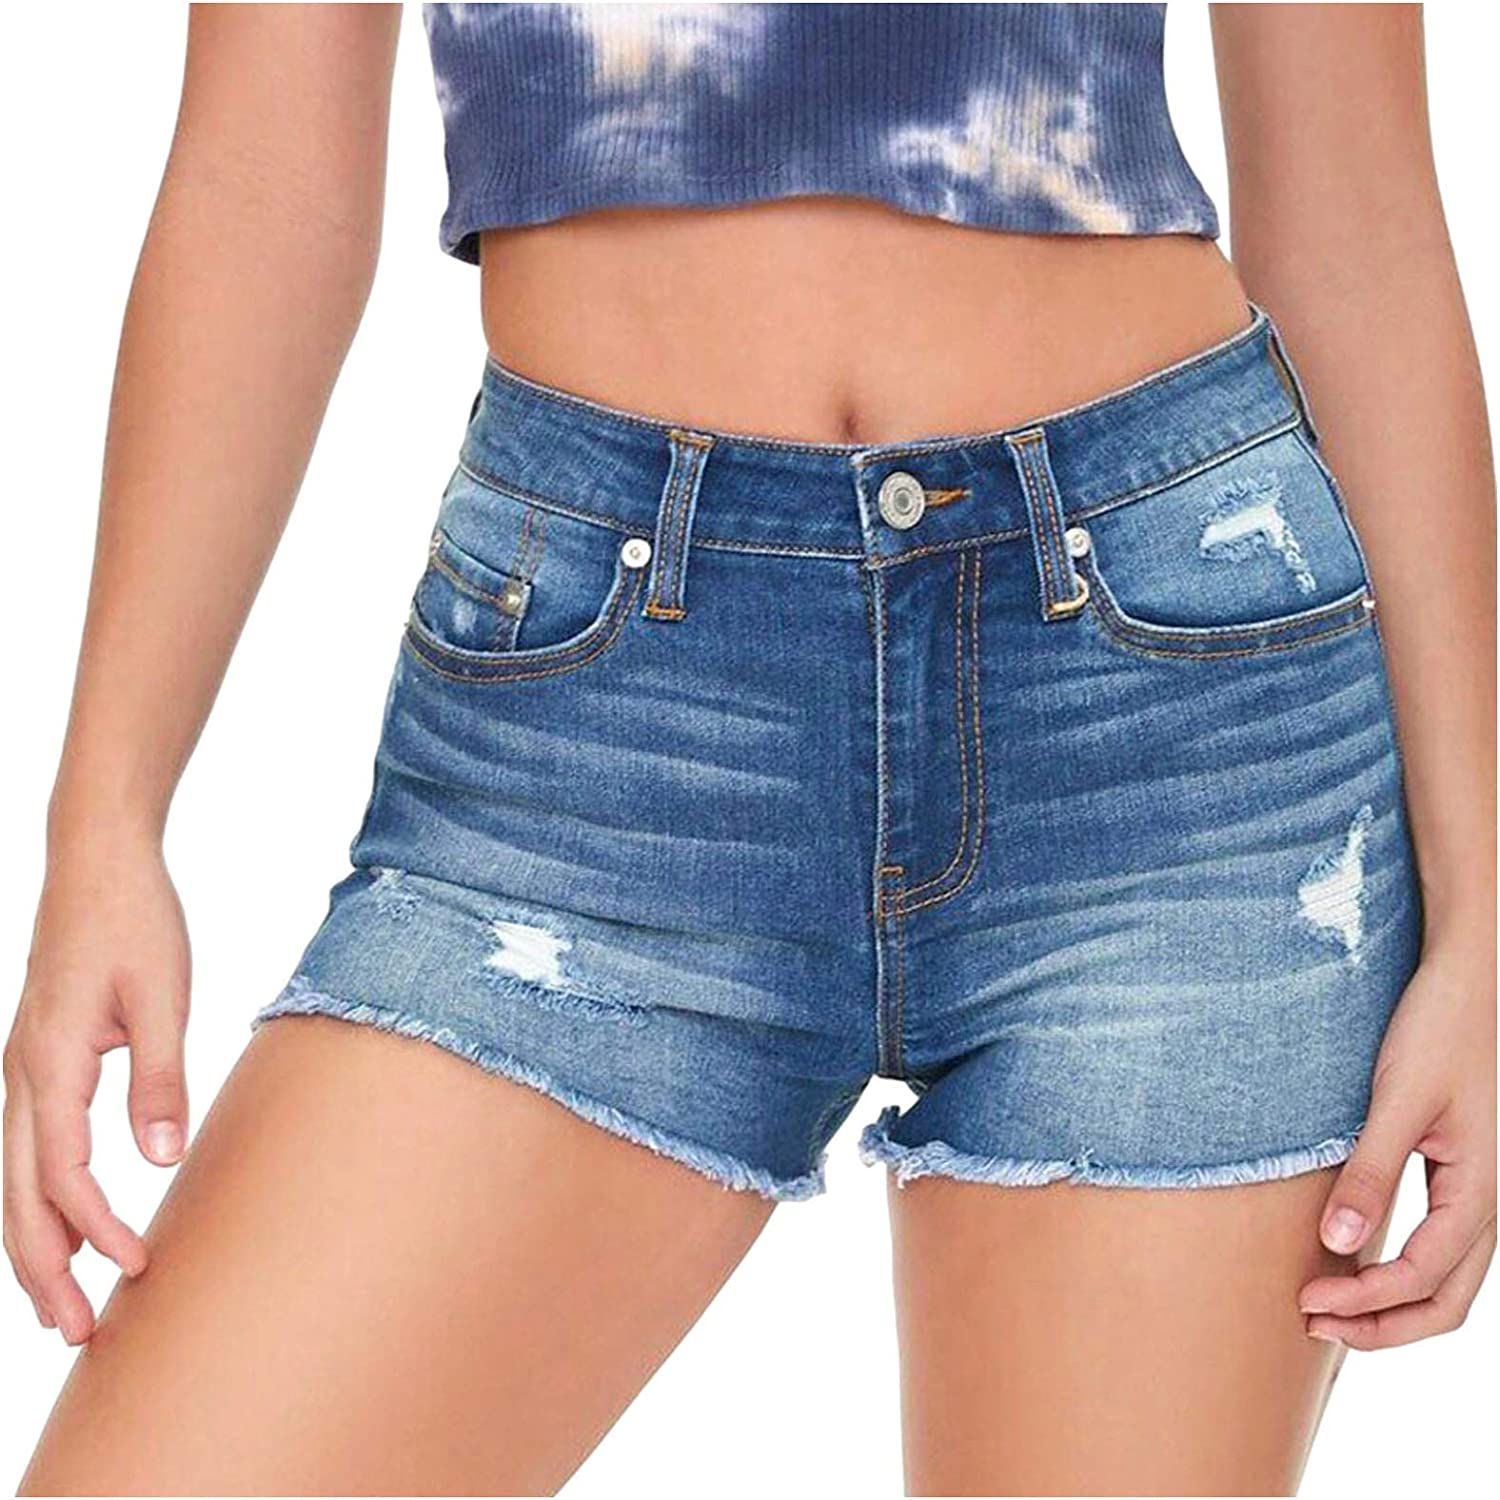 DOAEGNG Ripped Casual Vintage Short Jeans for Women,Stretch Slim Ripped Distressed Denim Shorts